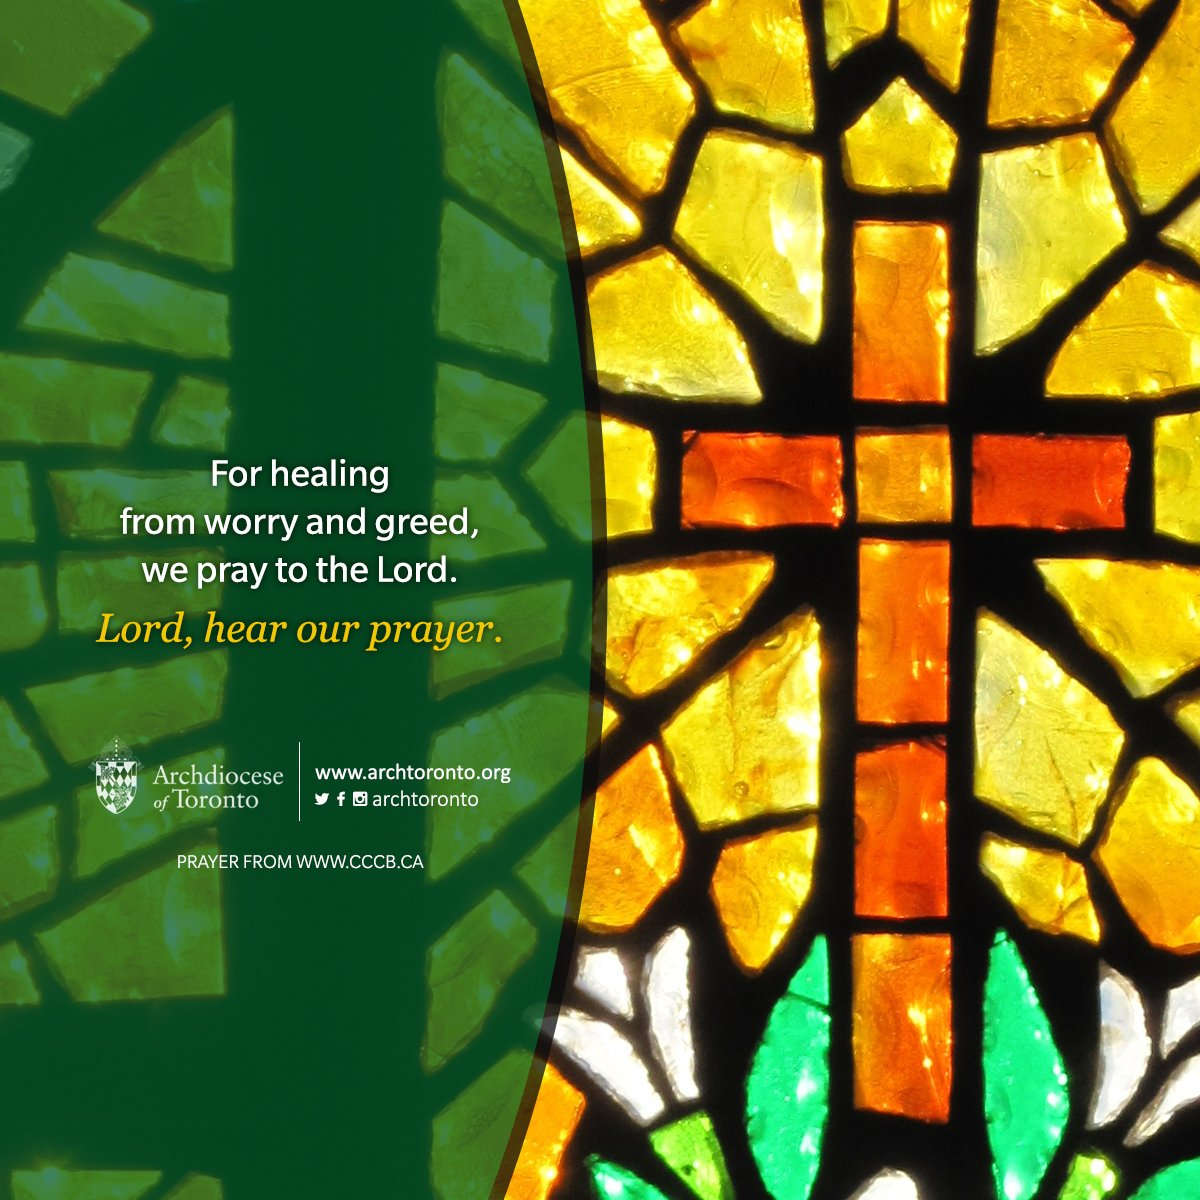 Archdiocese of Toronto on Twitter: